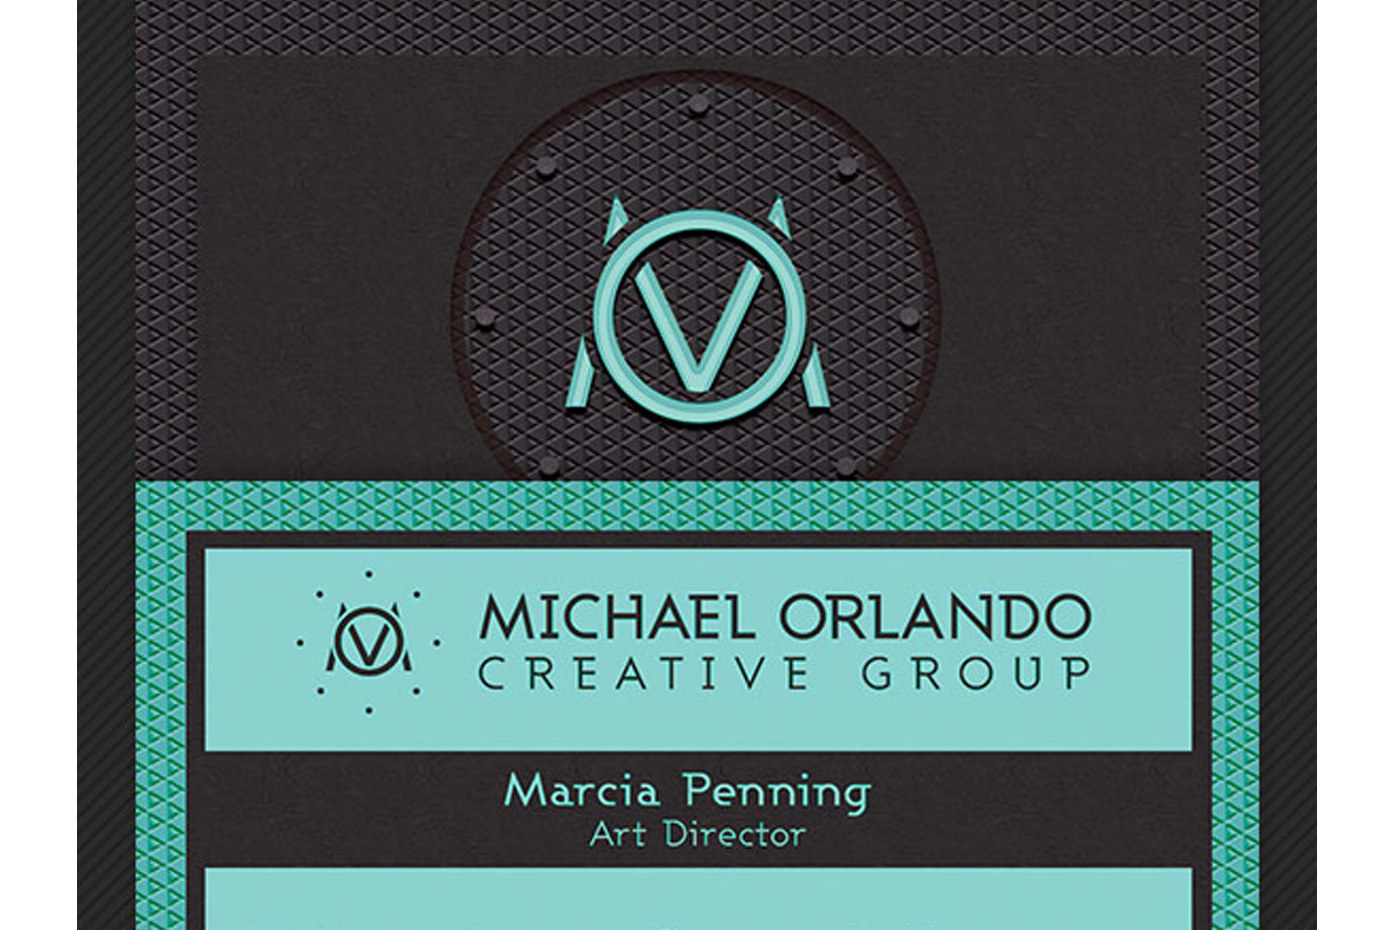 Creative Group Business Card Template example image 4